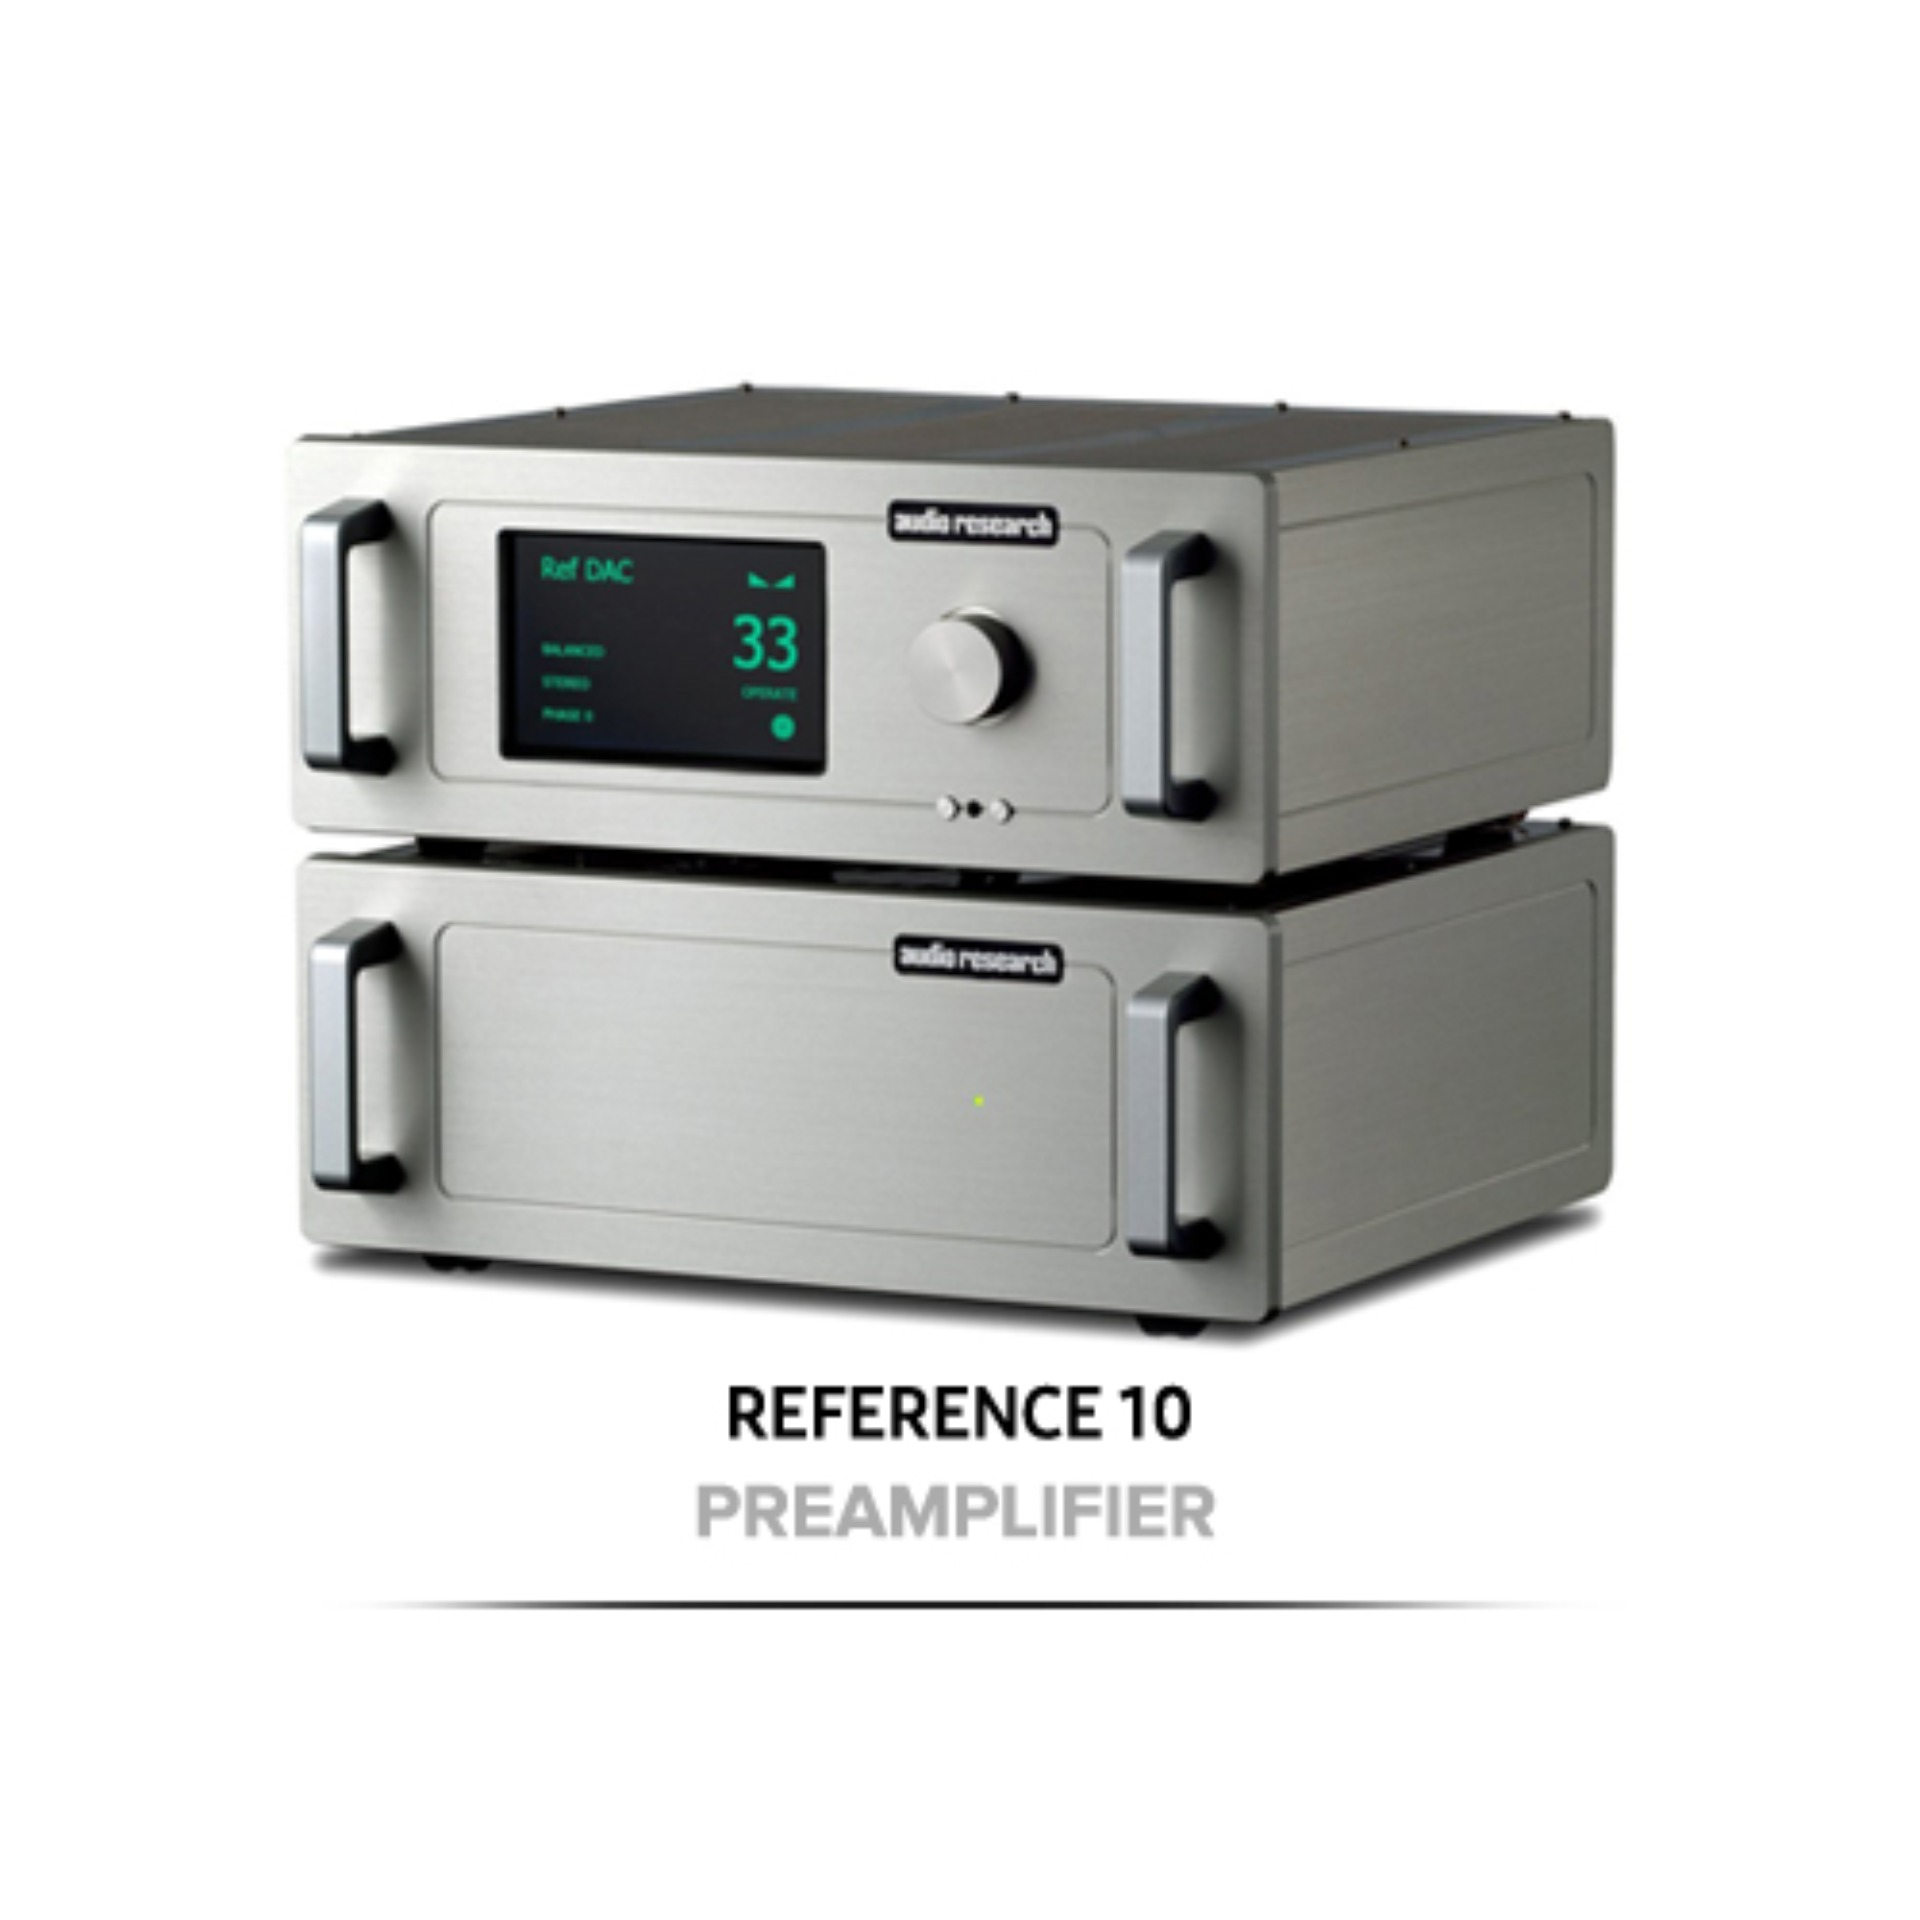 REFERENCE 10